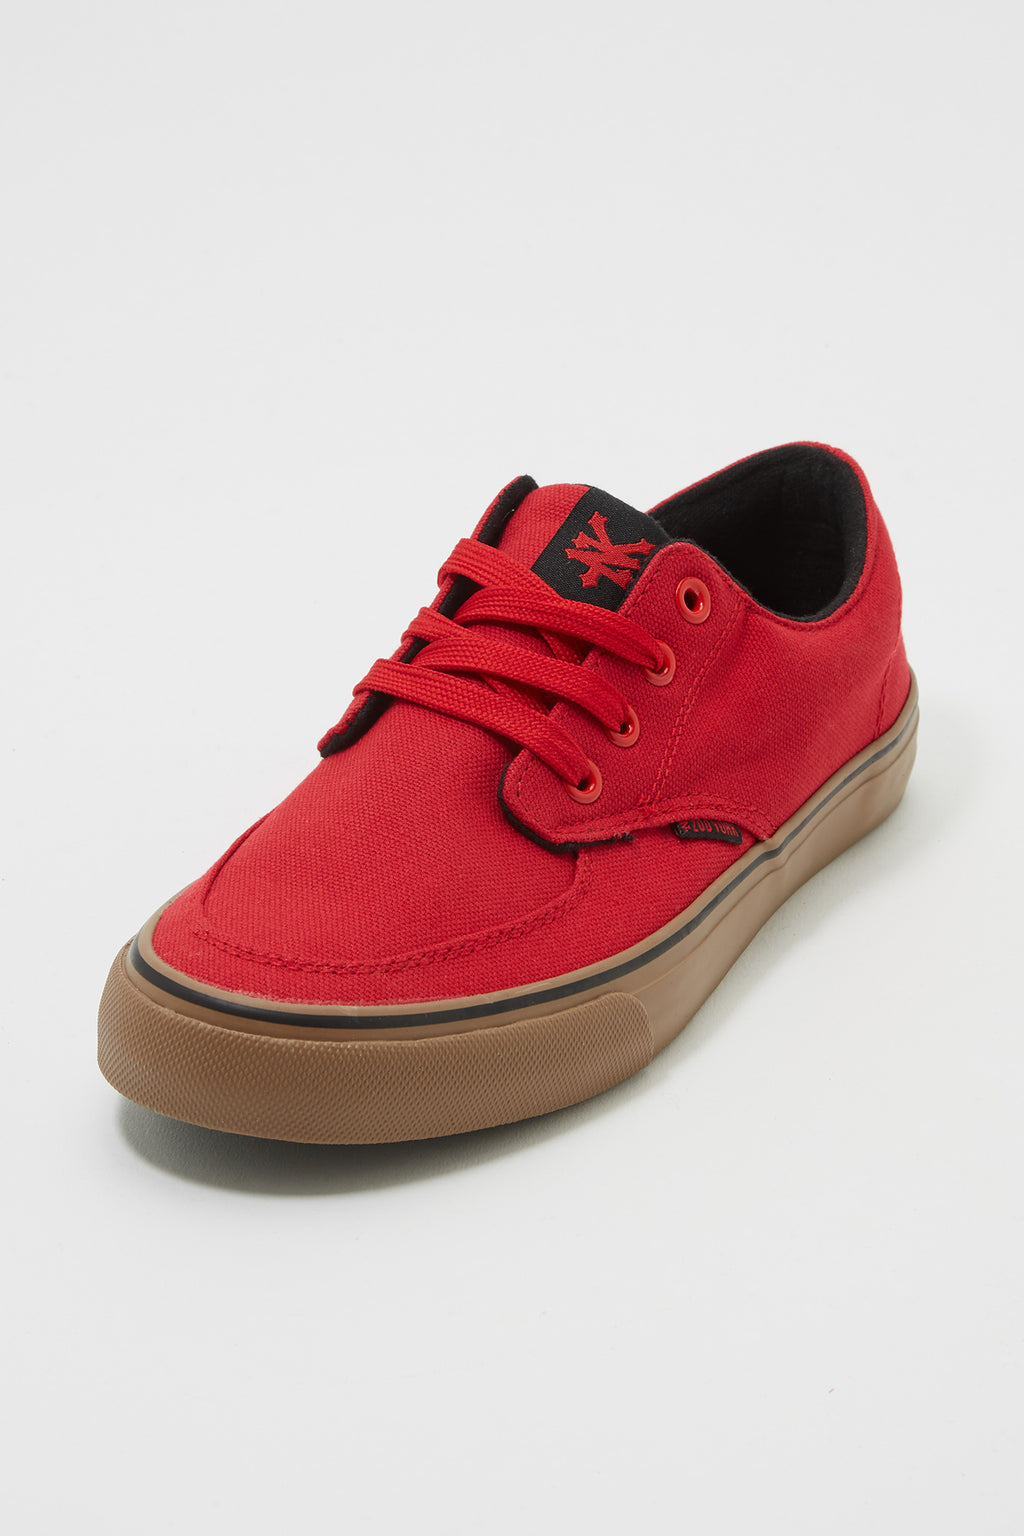 Zoo York Mens Red Ryan Canvas Shoes